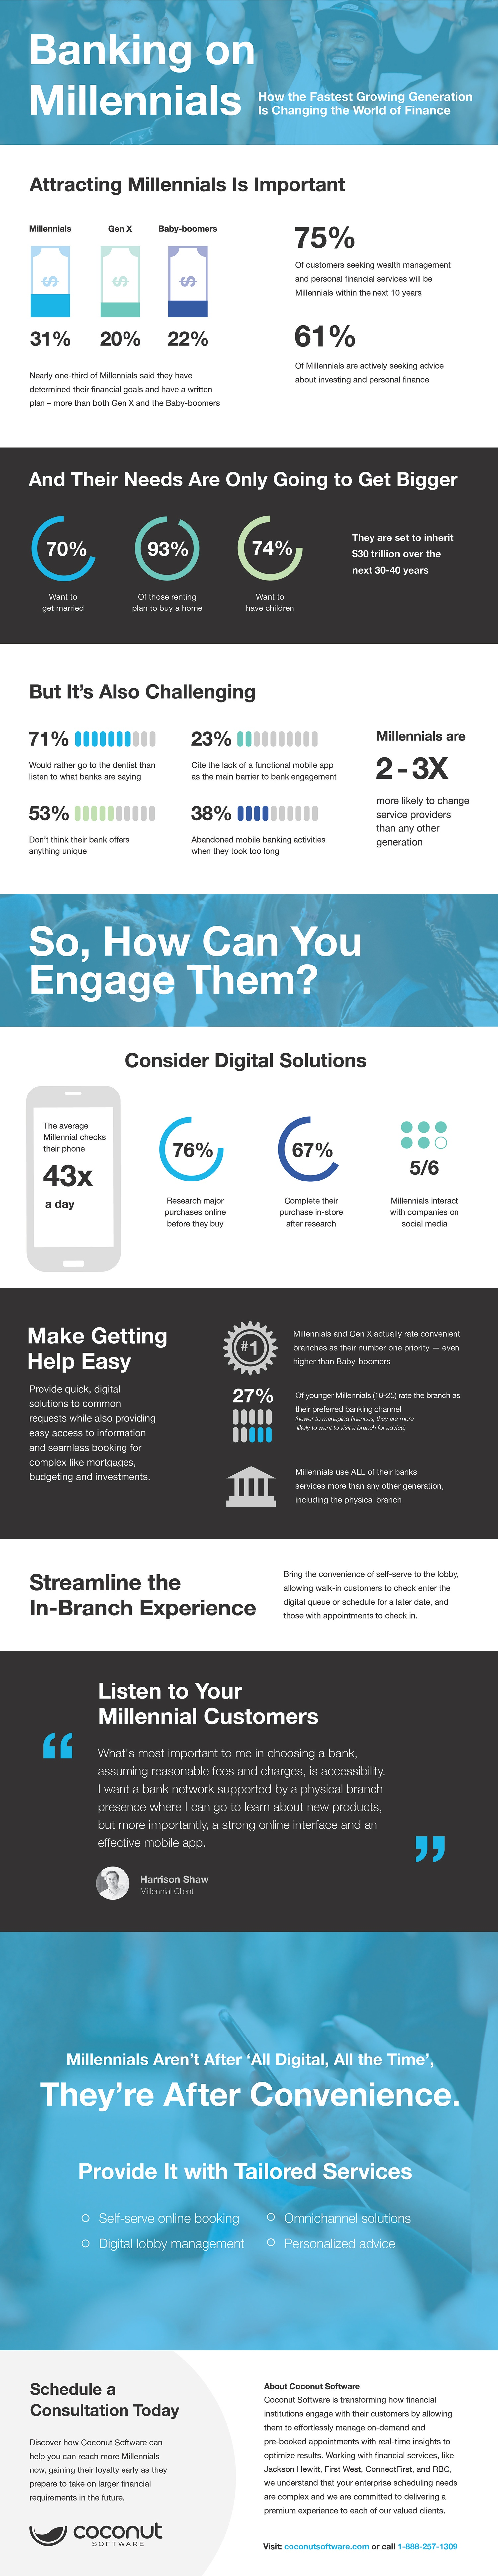 Banking on Millennials Infographic